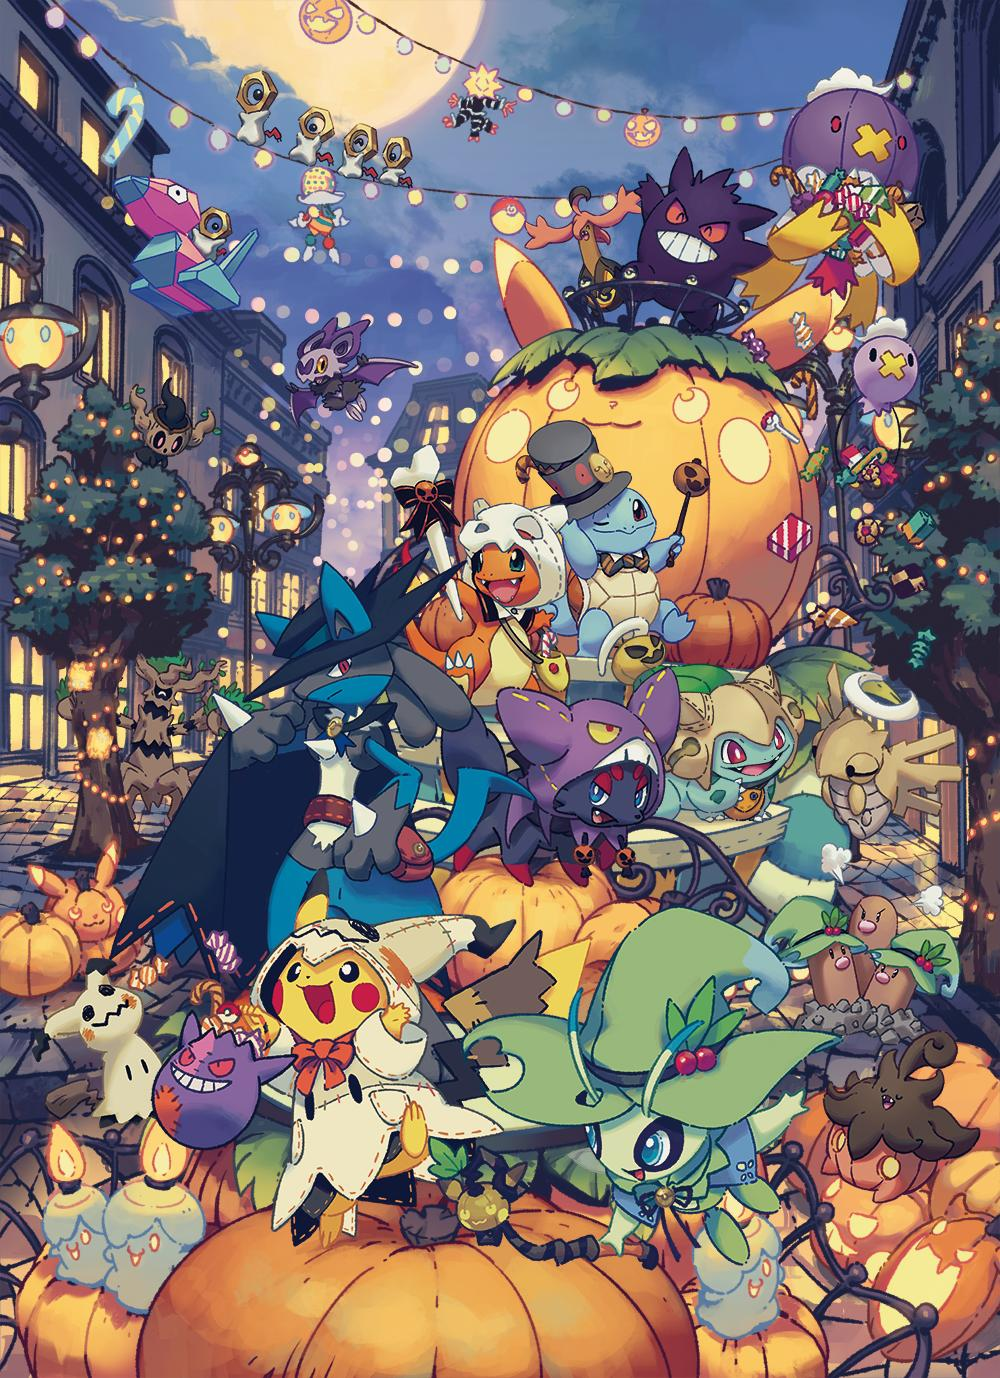 bulbasaur celebi charmander cosplay costume diglett drifblim drifloon gen_1_pokemon gen_2_pokemon gen_4_pokemon gen_5_pokemon gen_7_pokemon gengar gourgeist halloween halloween_costume hat highres jack-o'-lantern lampent lamppost litwick lucario meltan mimikyu moon night no_humans official_art ornament phantump pikachu pokemon porygon pumpkaboo pumpkin shedinja smile squirtle tree trevenant zorua